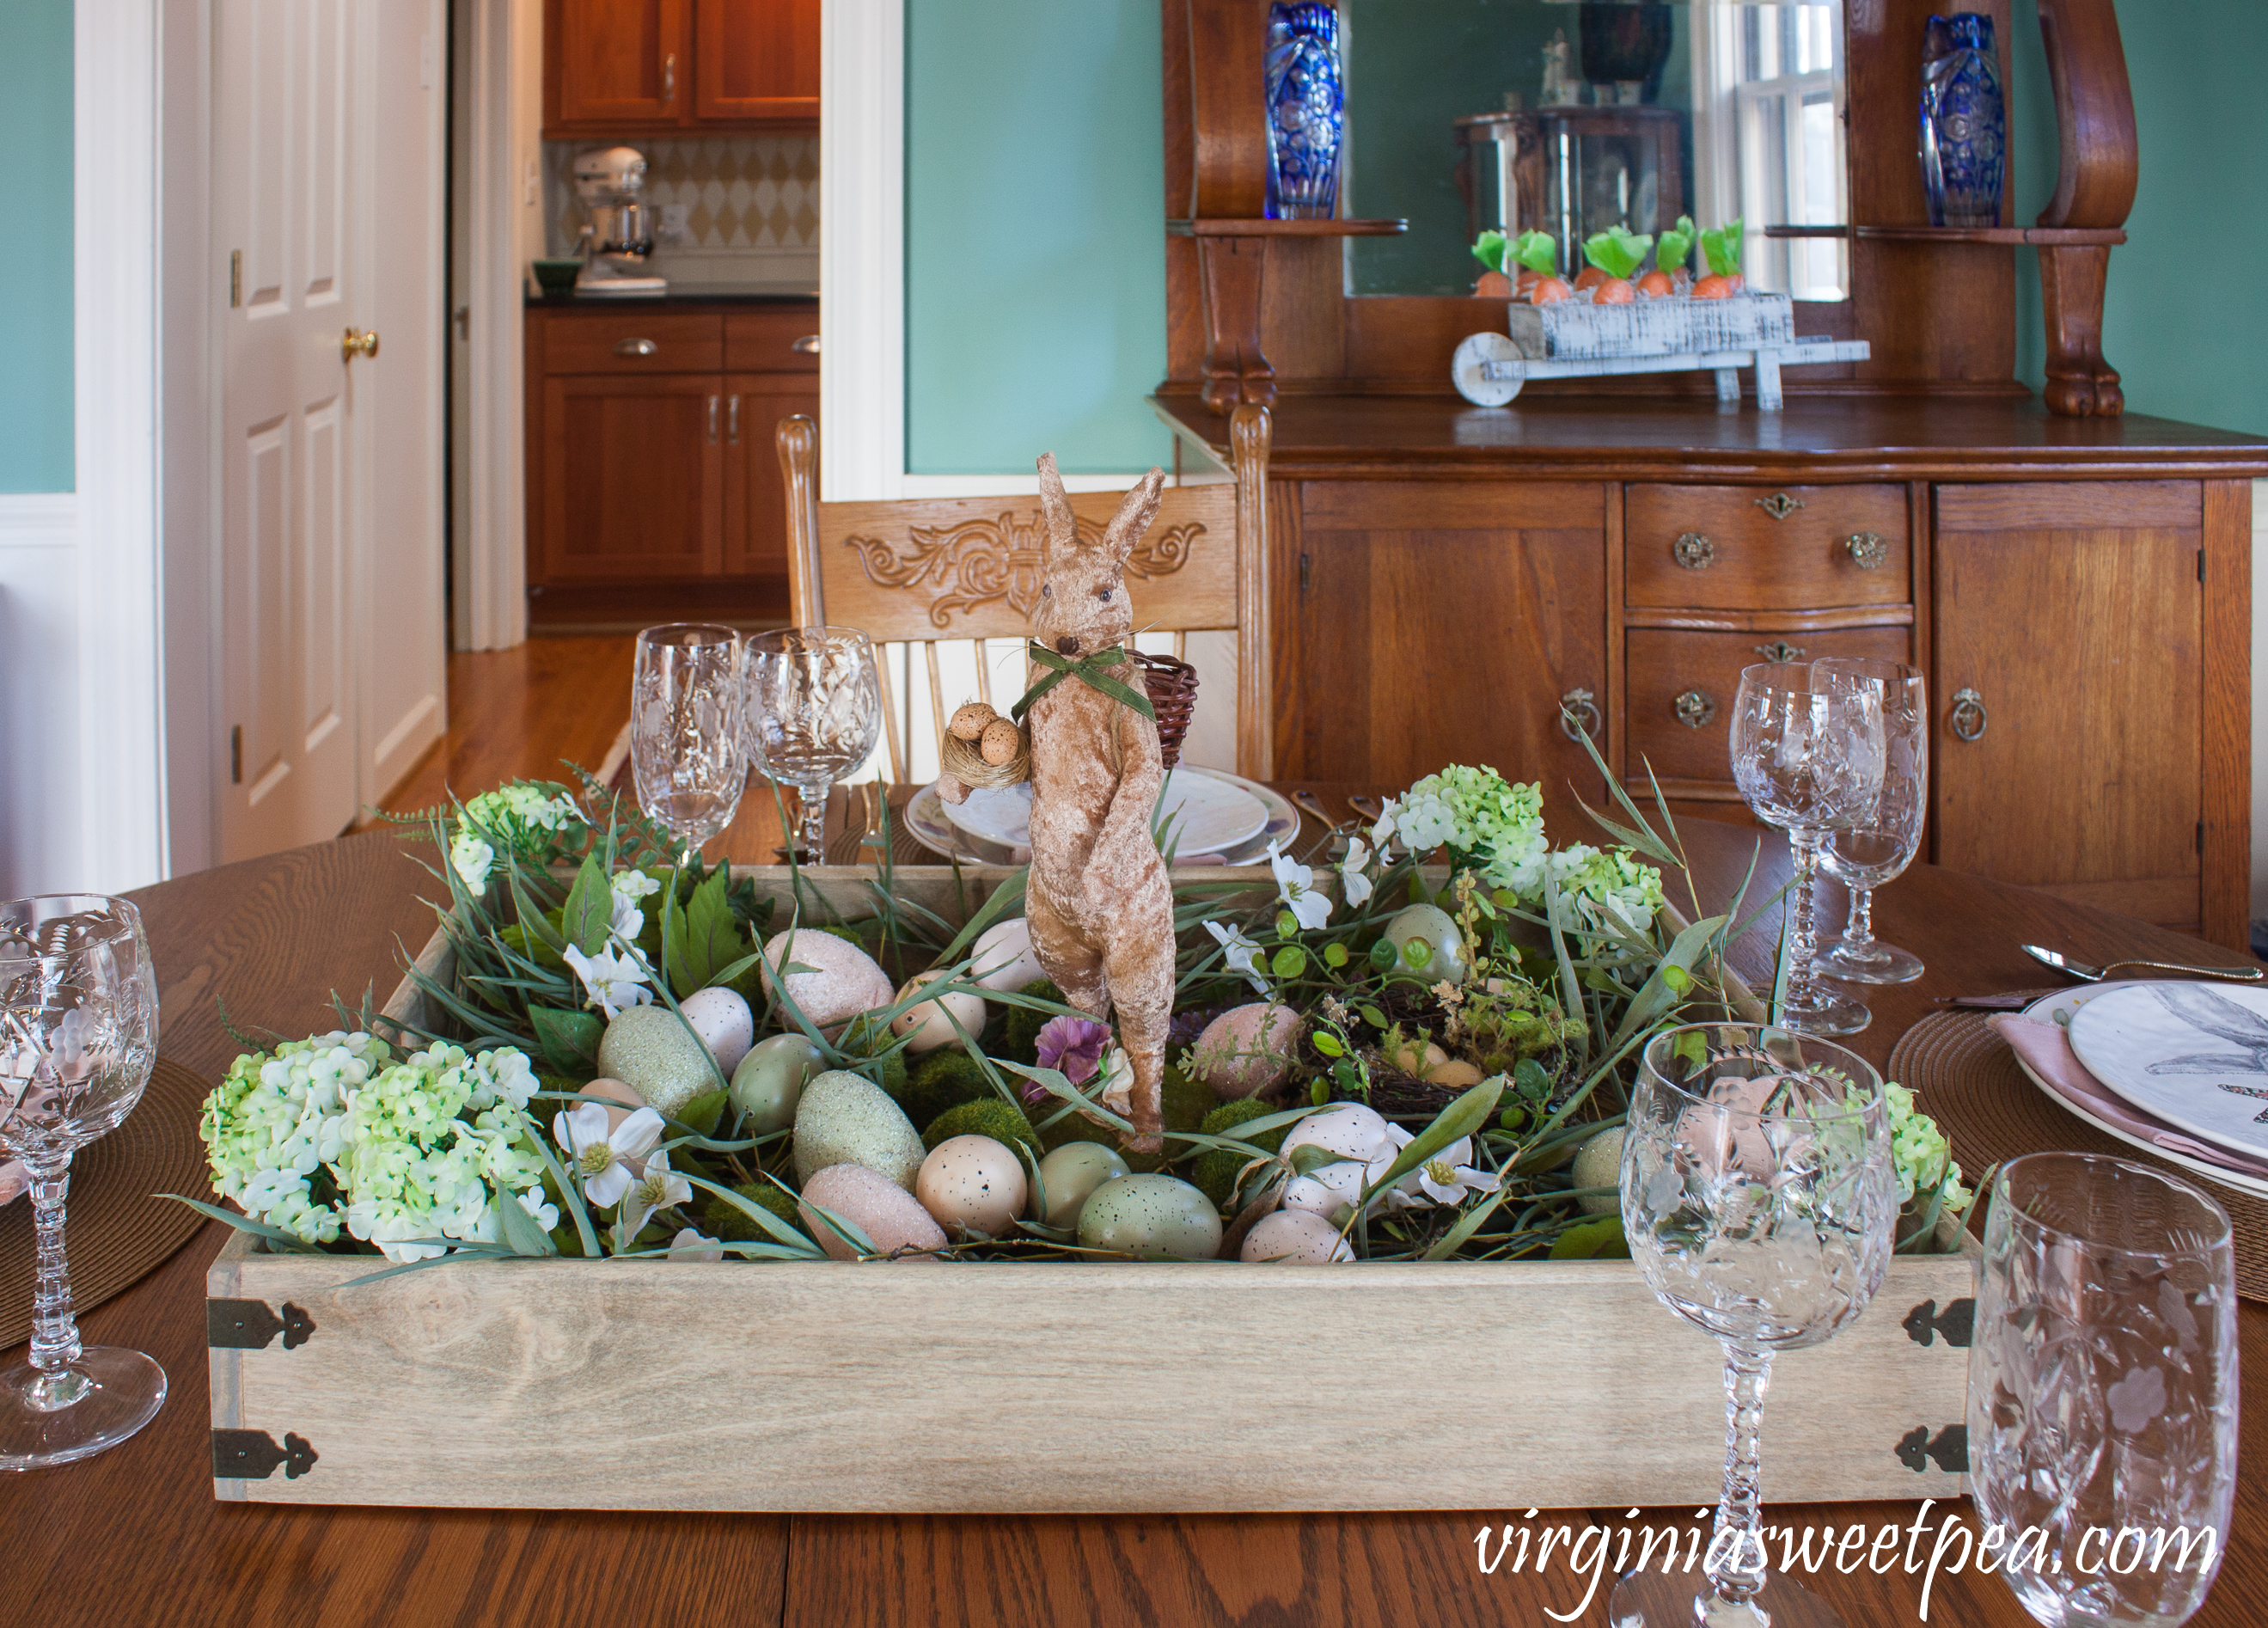 Farmhouse Style Easter Centerpiece - Learn how to copy this look for your own Easter table. #easter #eastercenterpiece #eastertablescape #farmhouse #farmhousecenterpiece #farmhousetable #eastertable